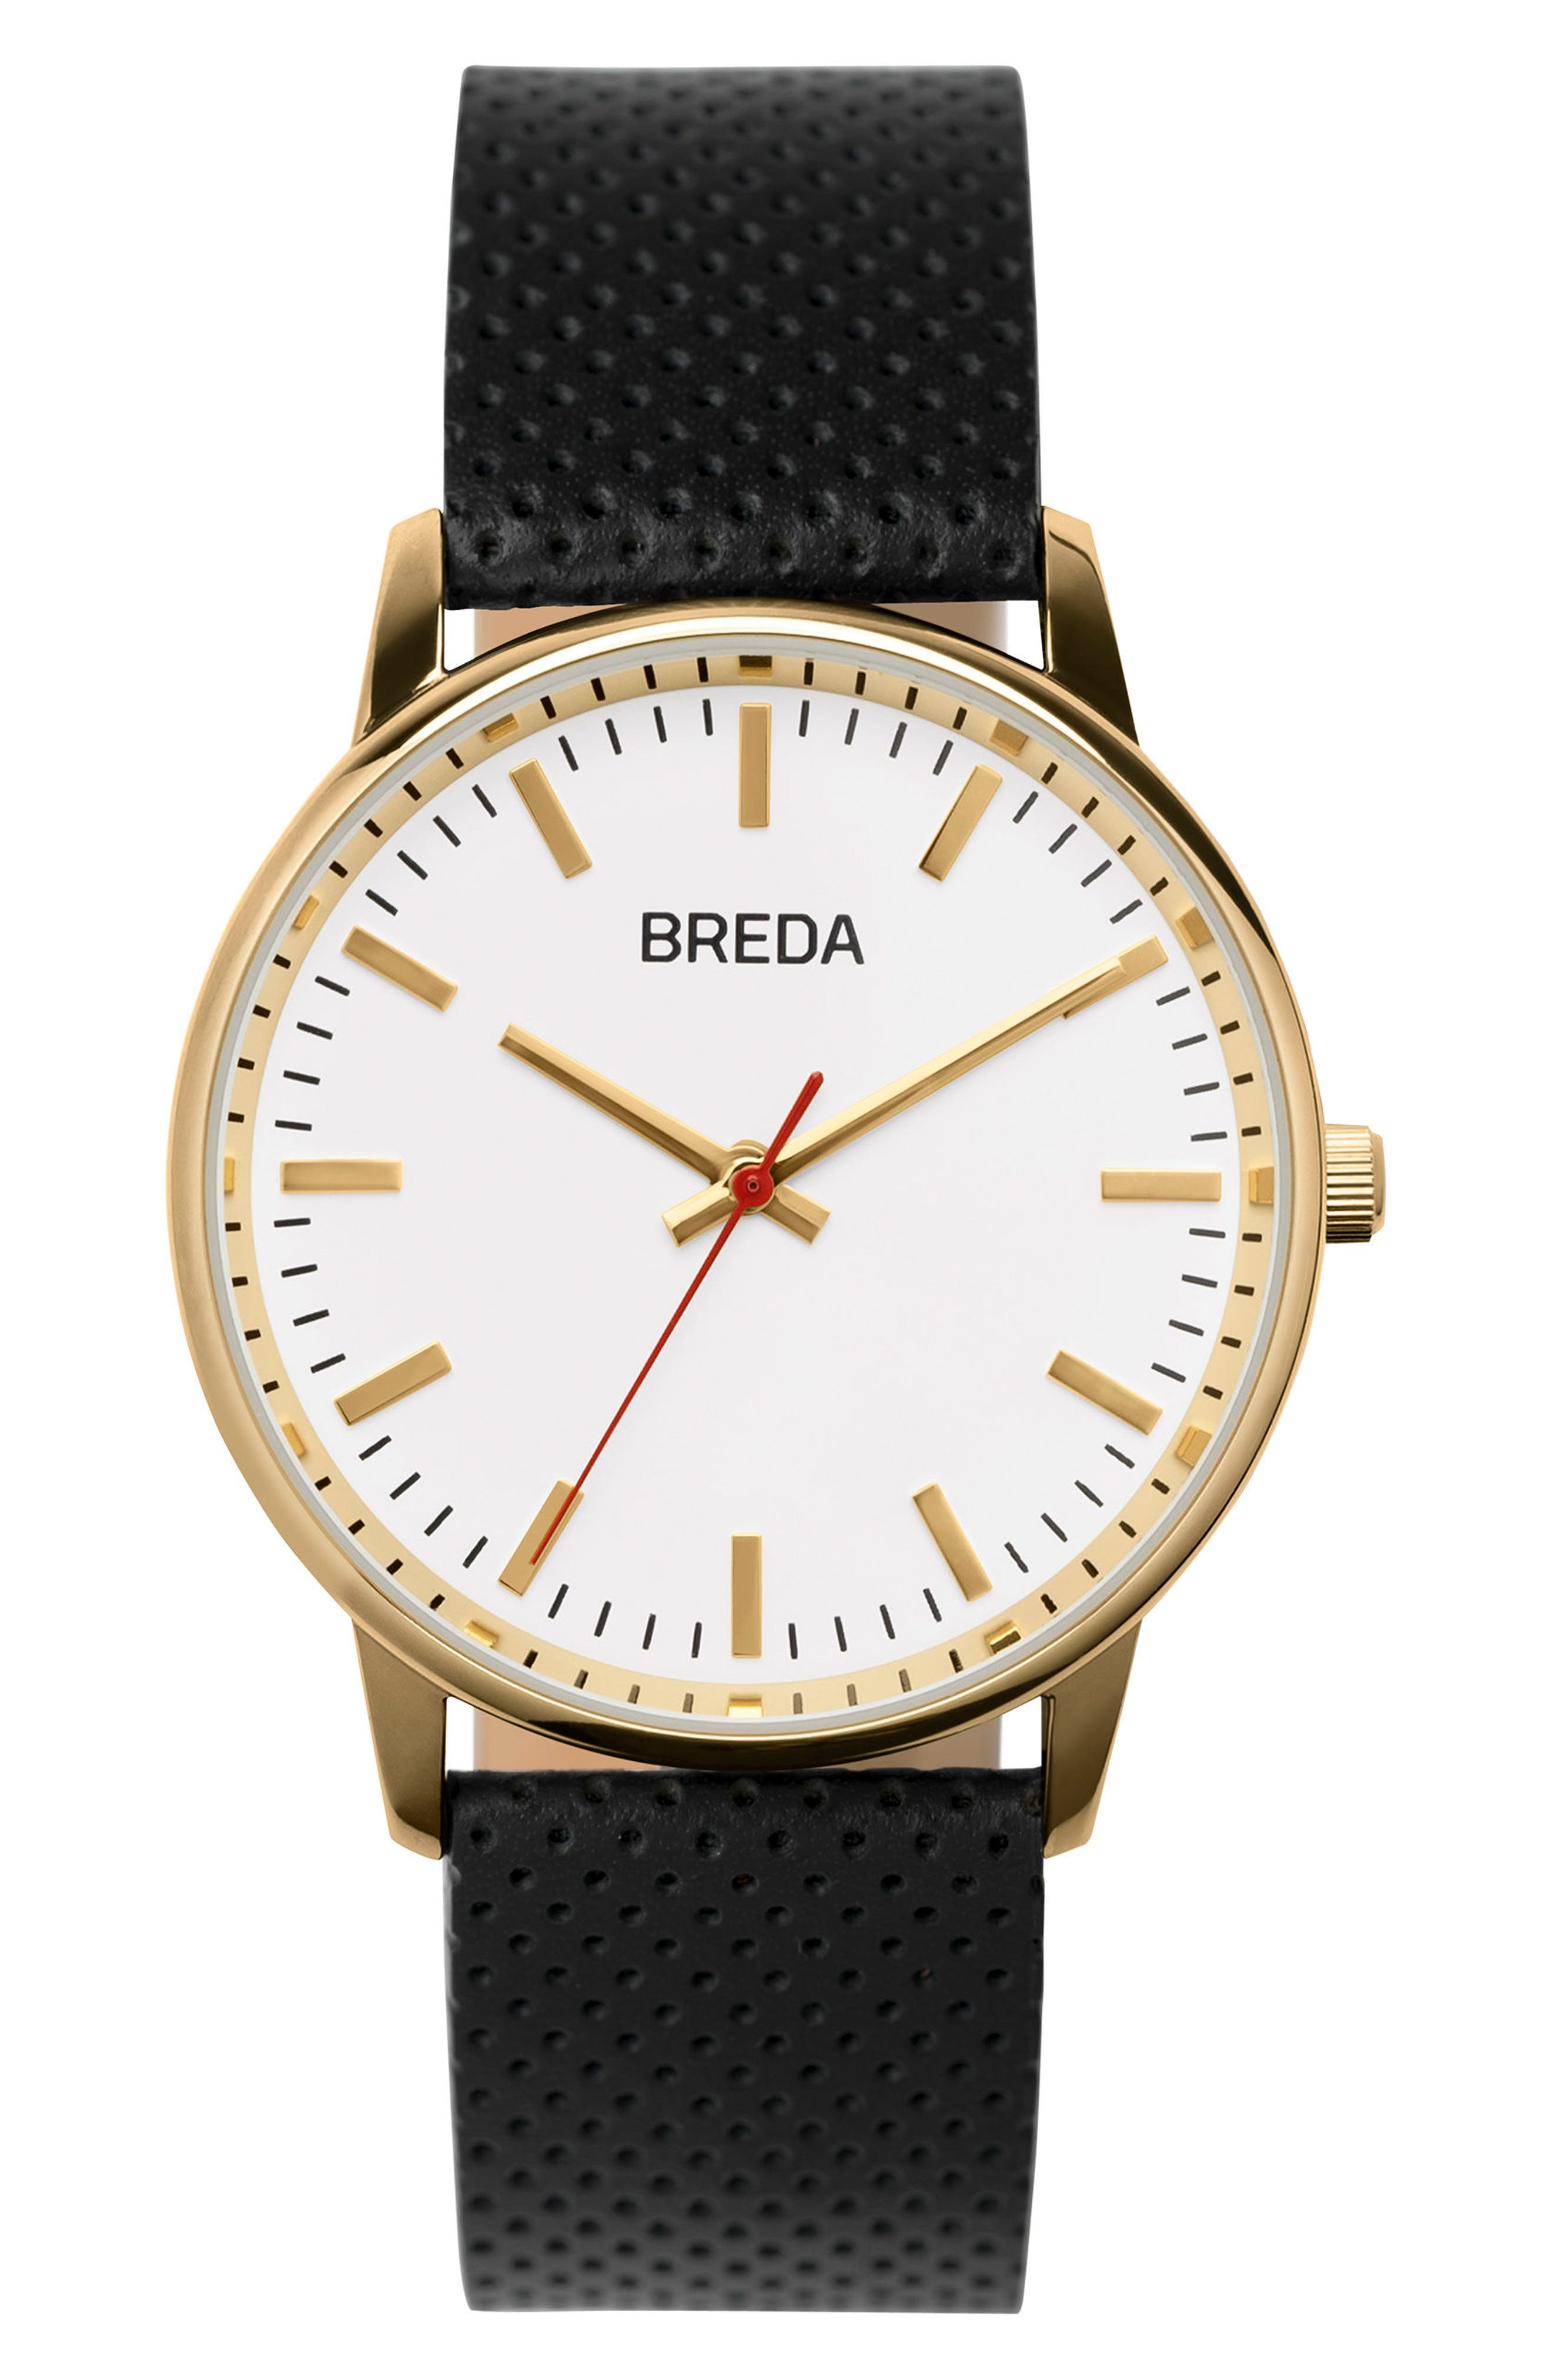 Main Image - BREDA Round Perforated Leather Strap Watch, 39mm